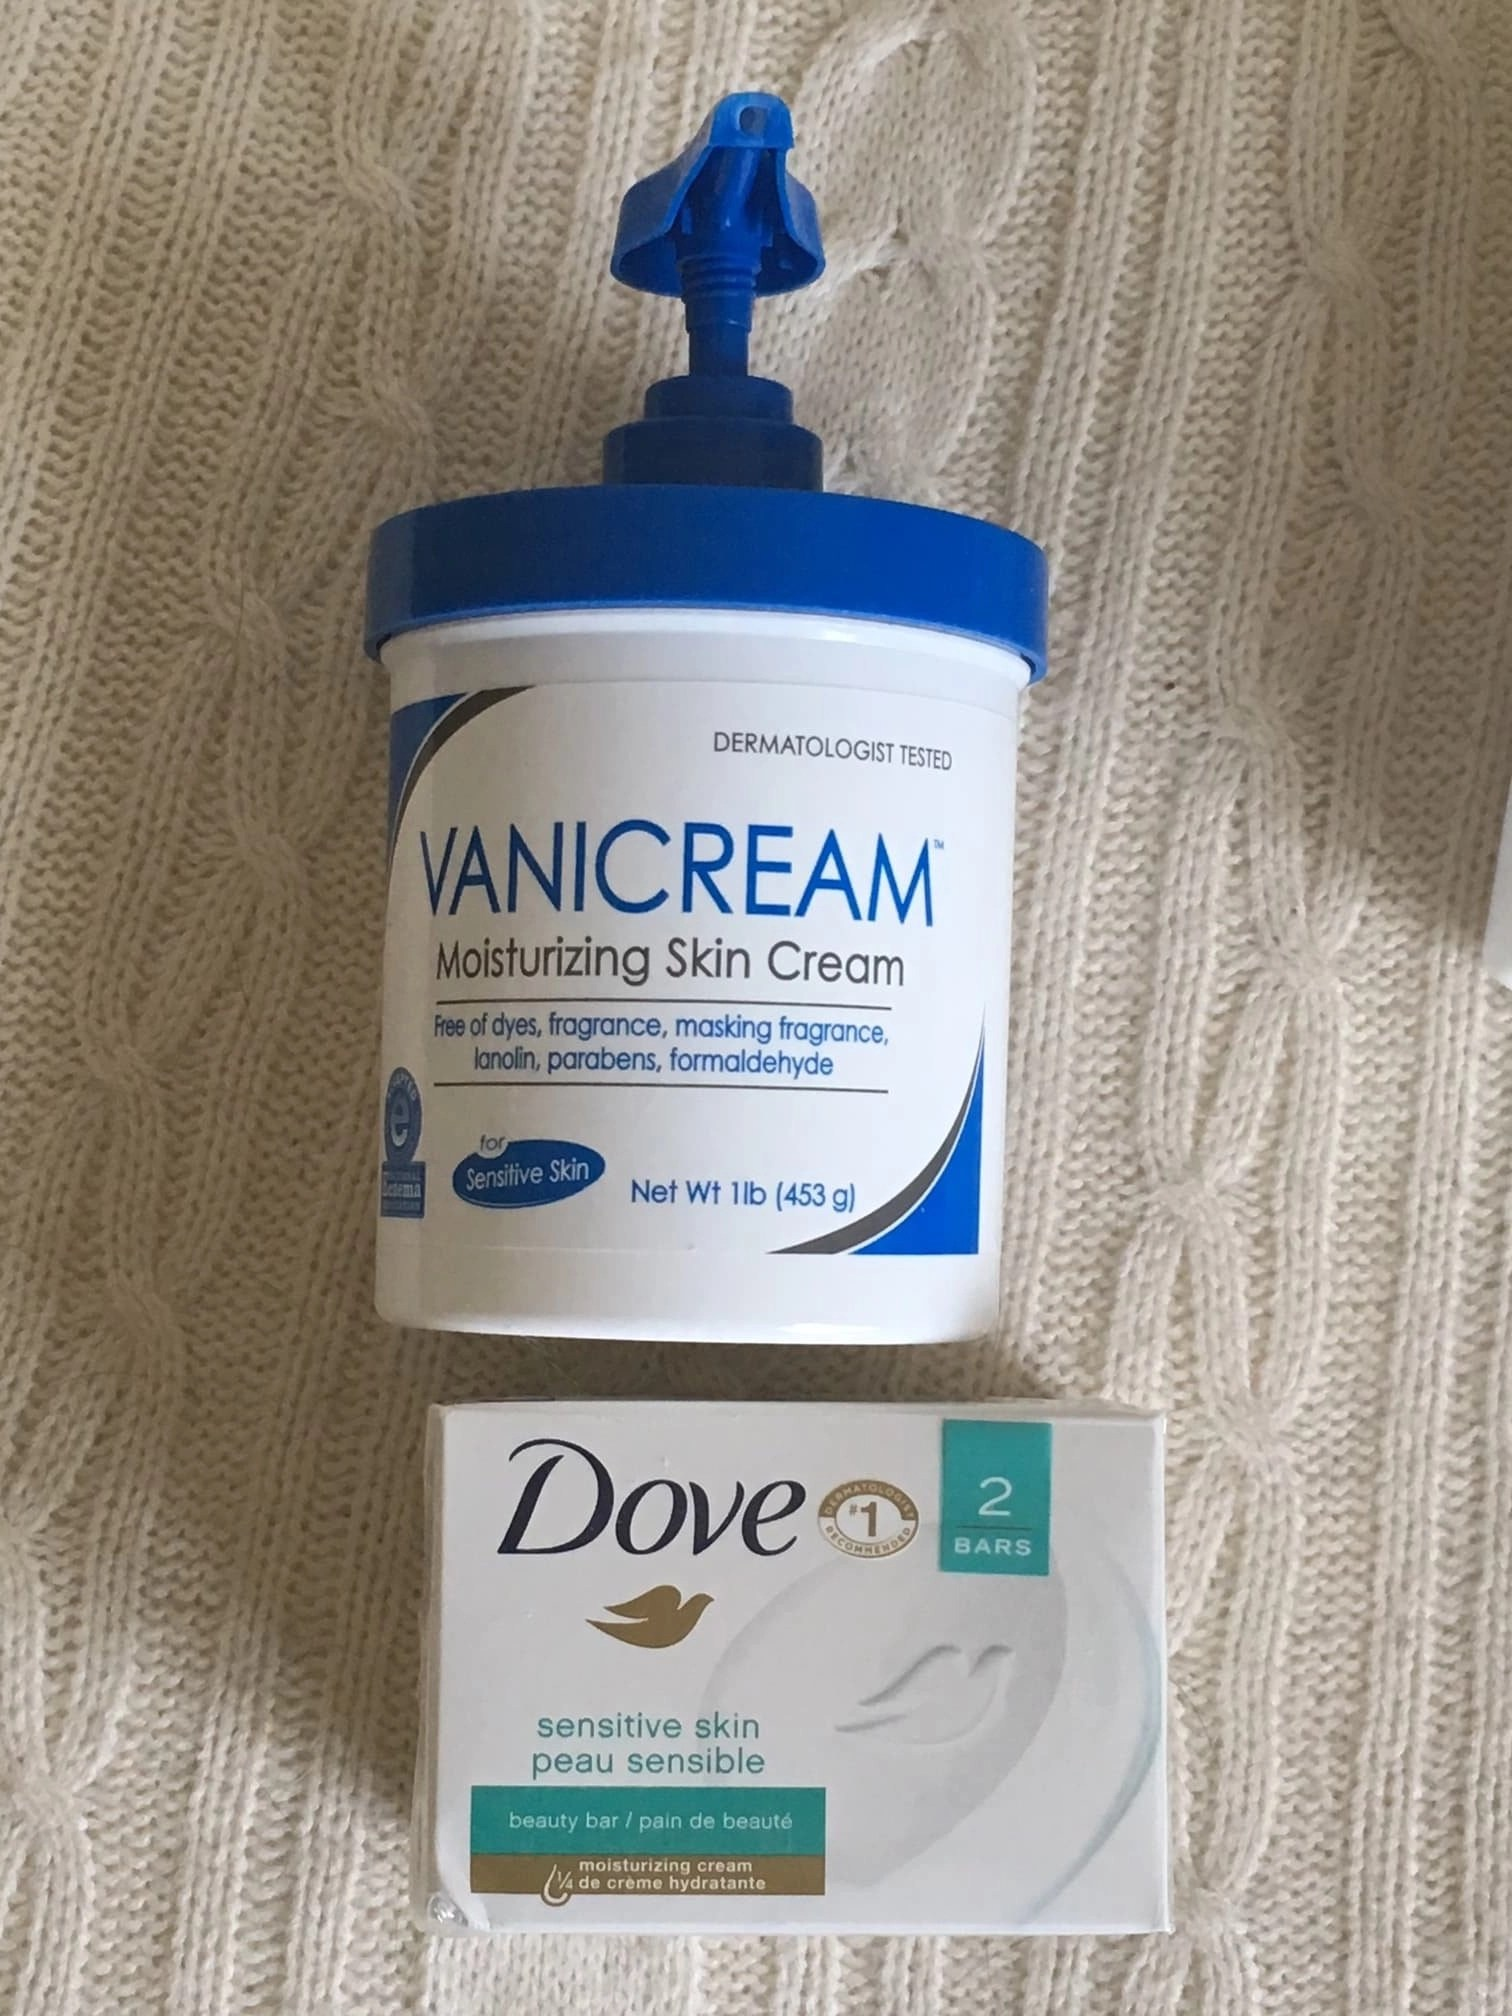 Vanicream and Dove body soap